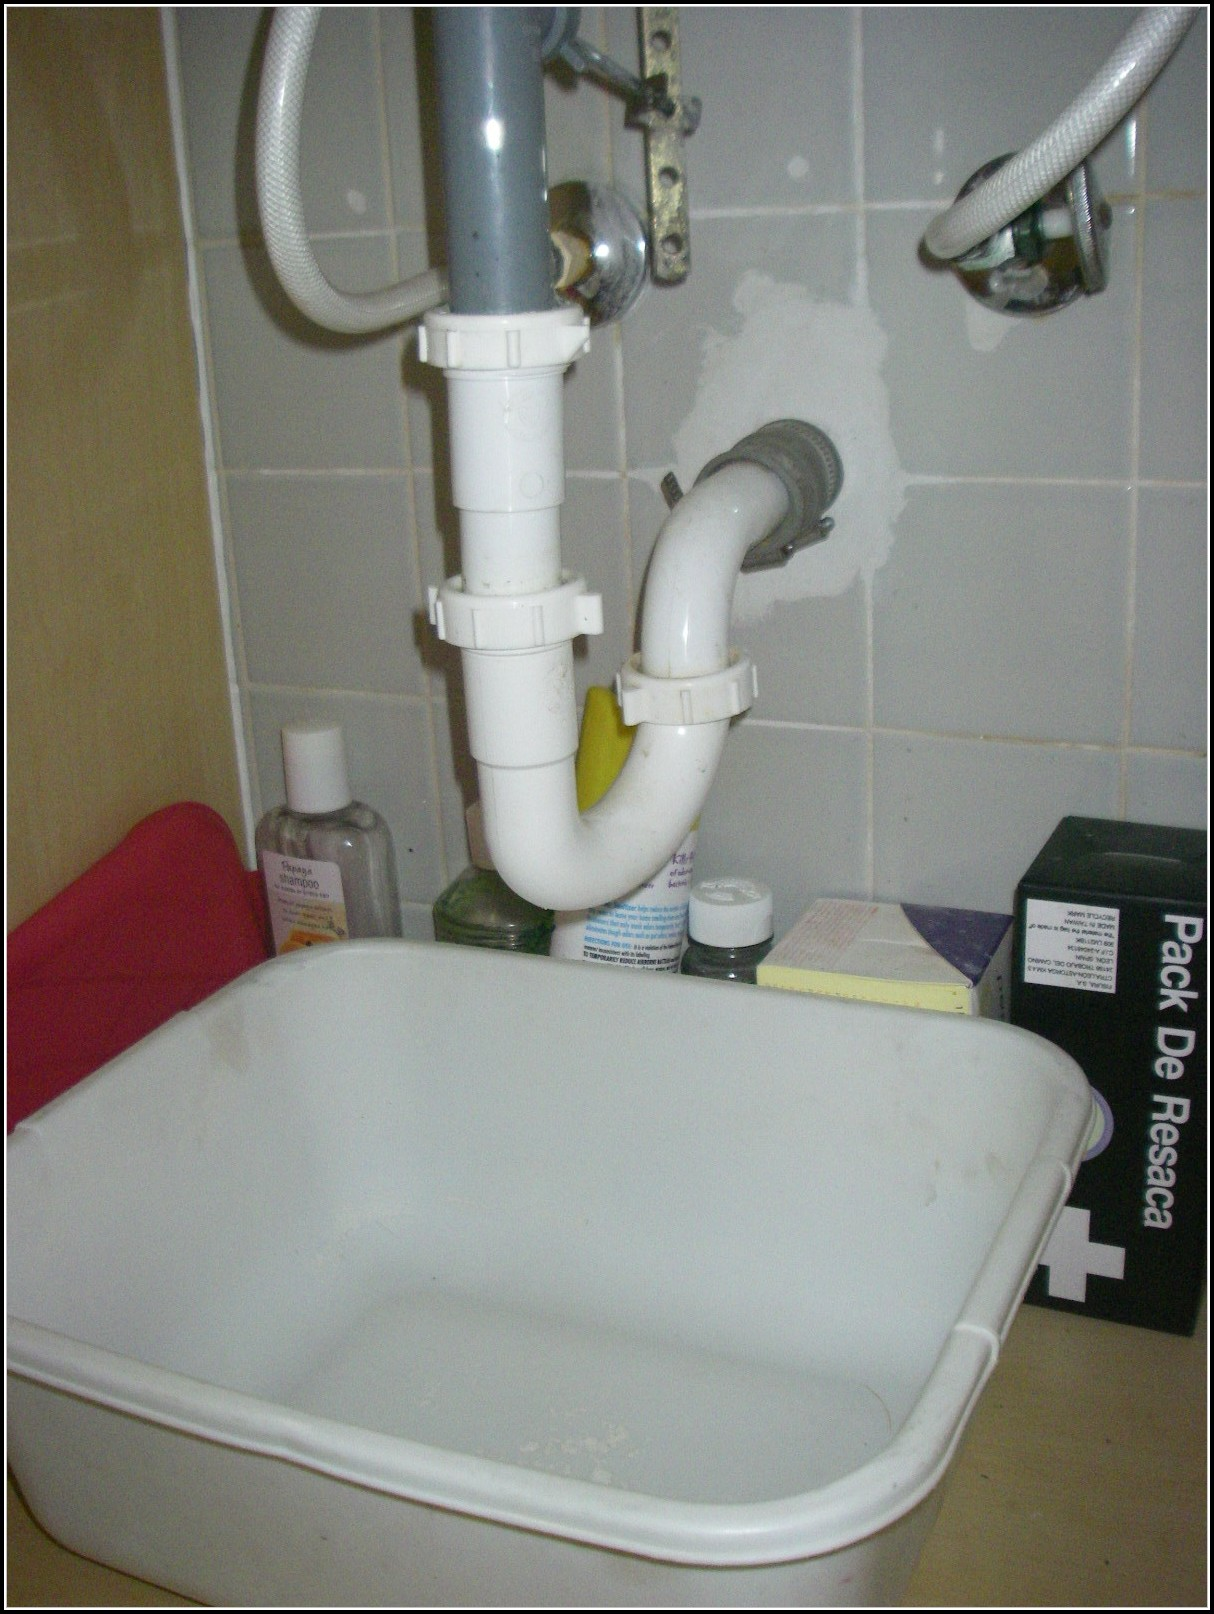 Unclog Bathroom Sink Chemicals